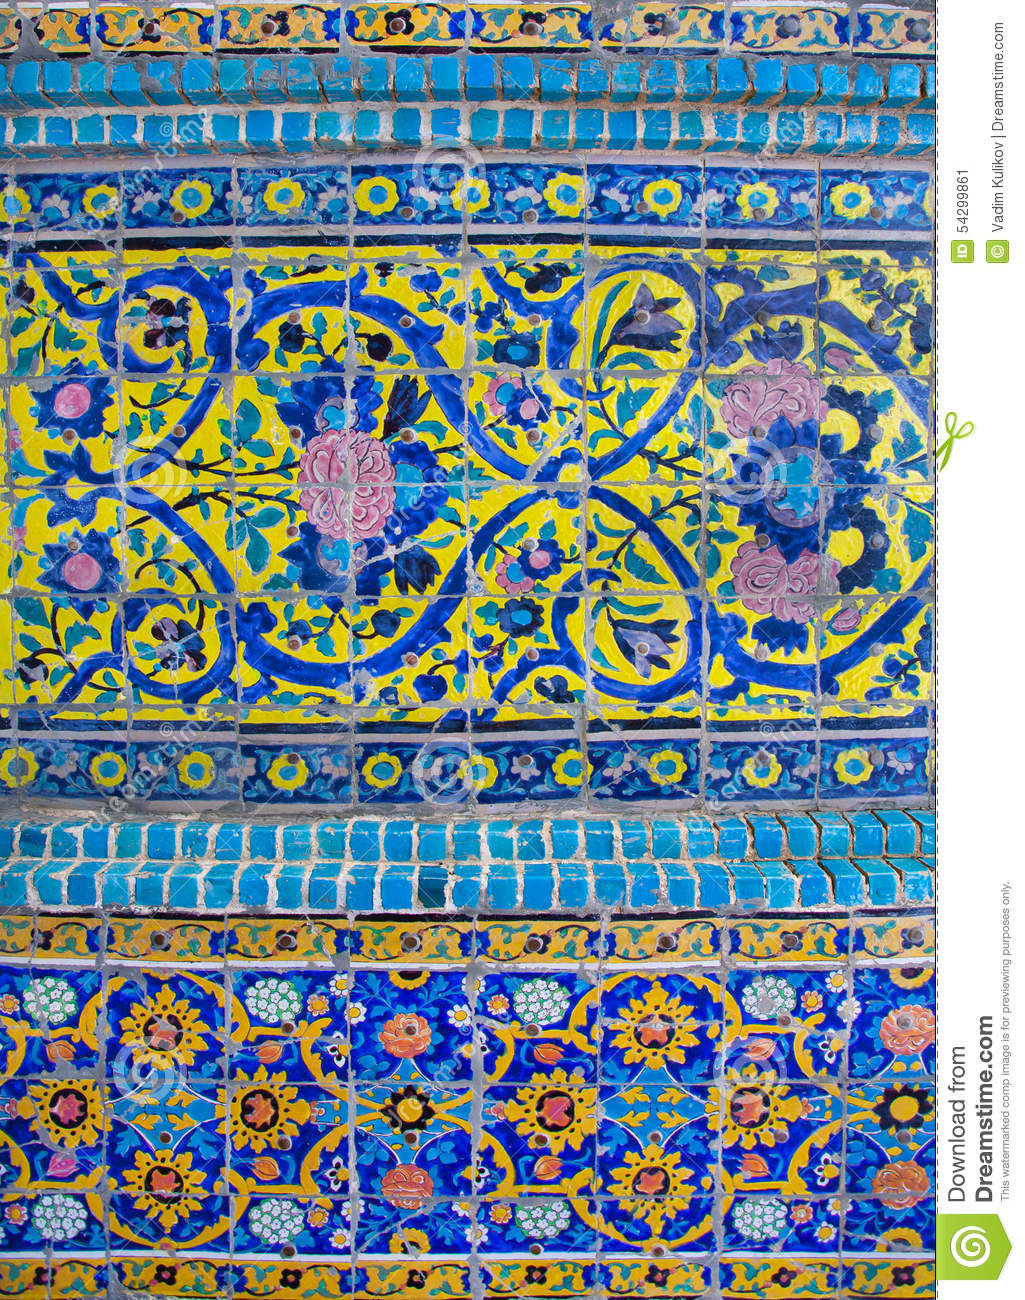 Persian Patterns On The Beautiful Walls Of The Old Mosque